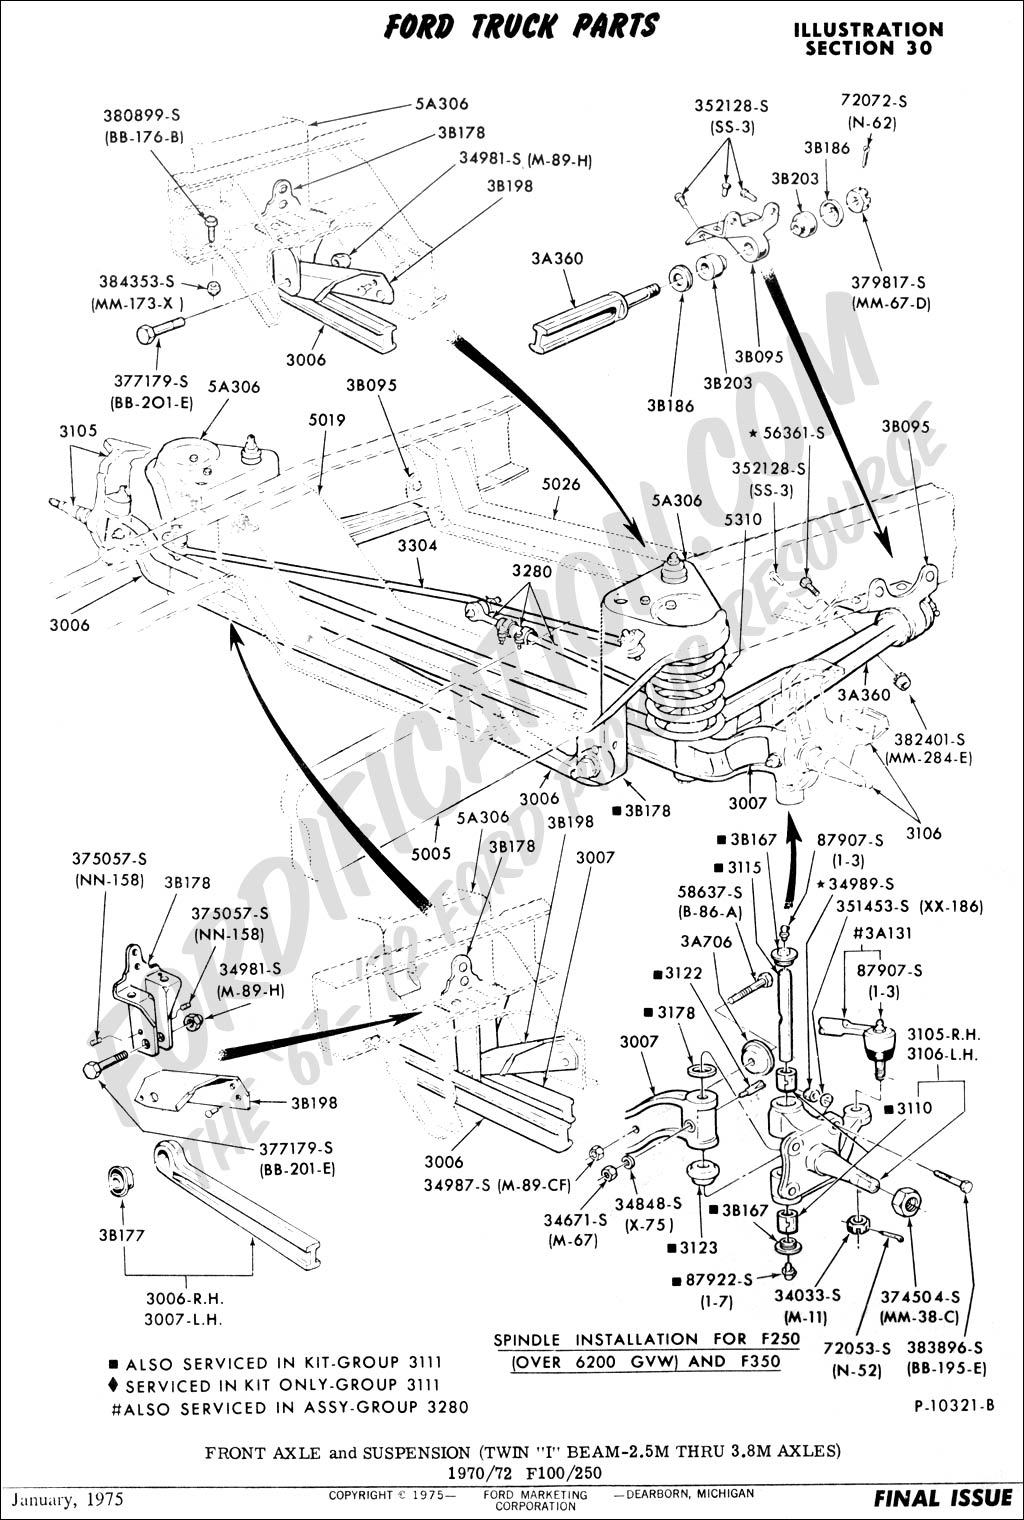 2006 ford f150 parts diagram 1998 mitsubishi eclipse radio wiring f 150 front suspension free